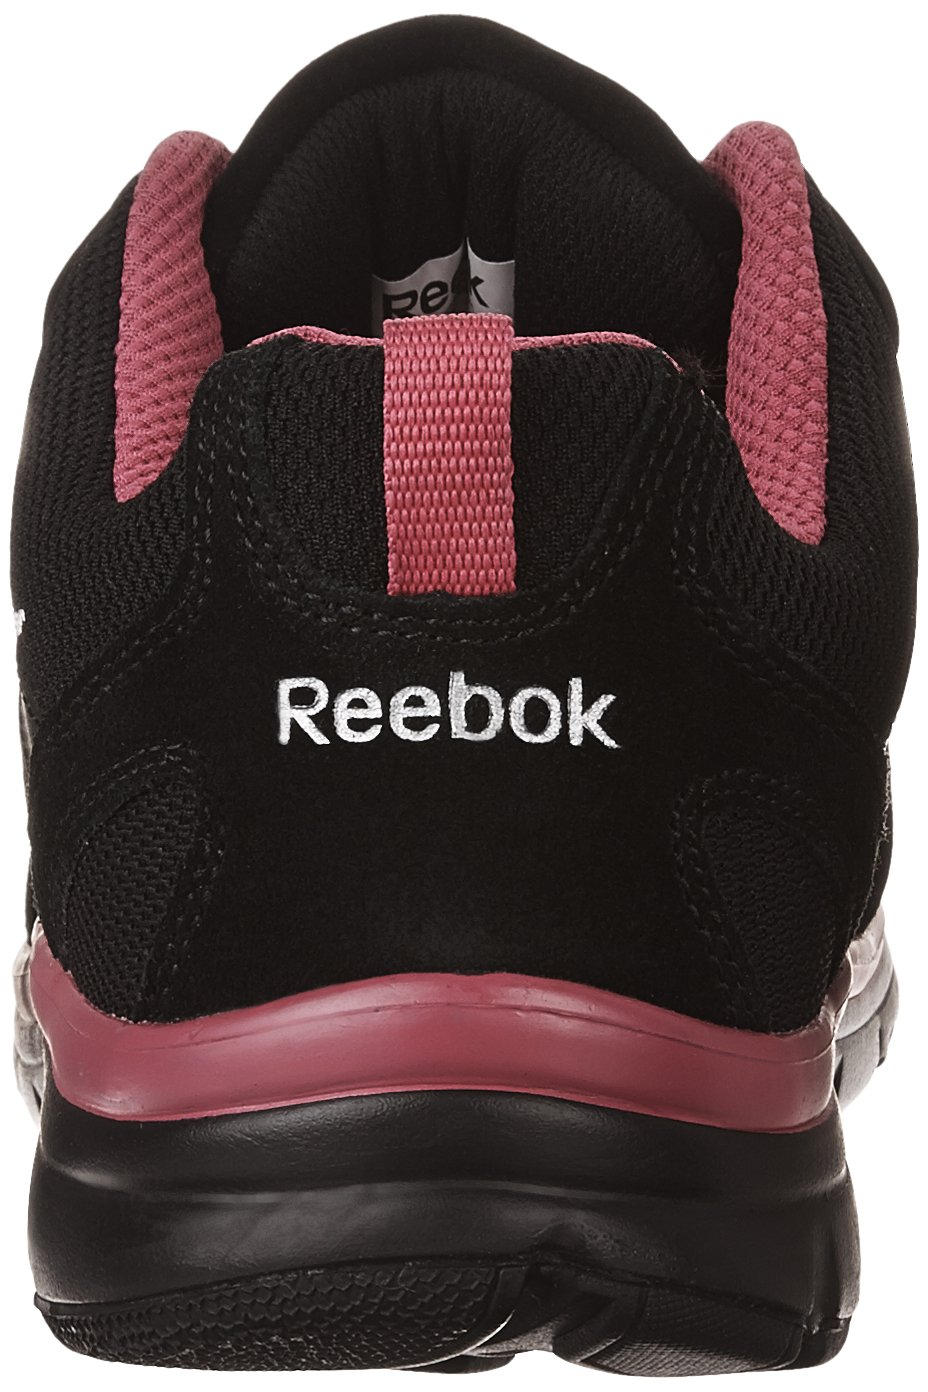 Reebok Work Women's Anomar RB454 Athletic Safety Shoe B01N6HOUA5 5.5 B(M) US|Black and Pink w/Silver Trim